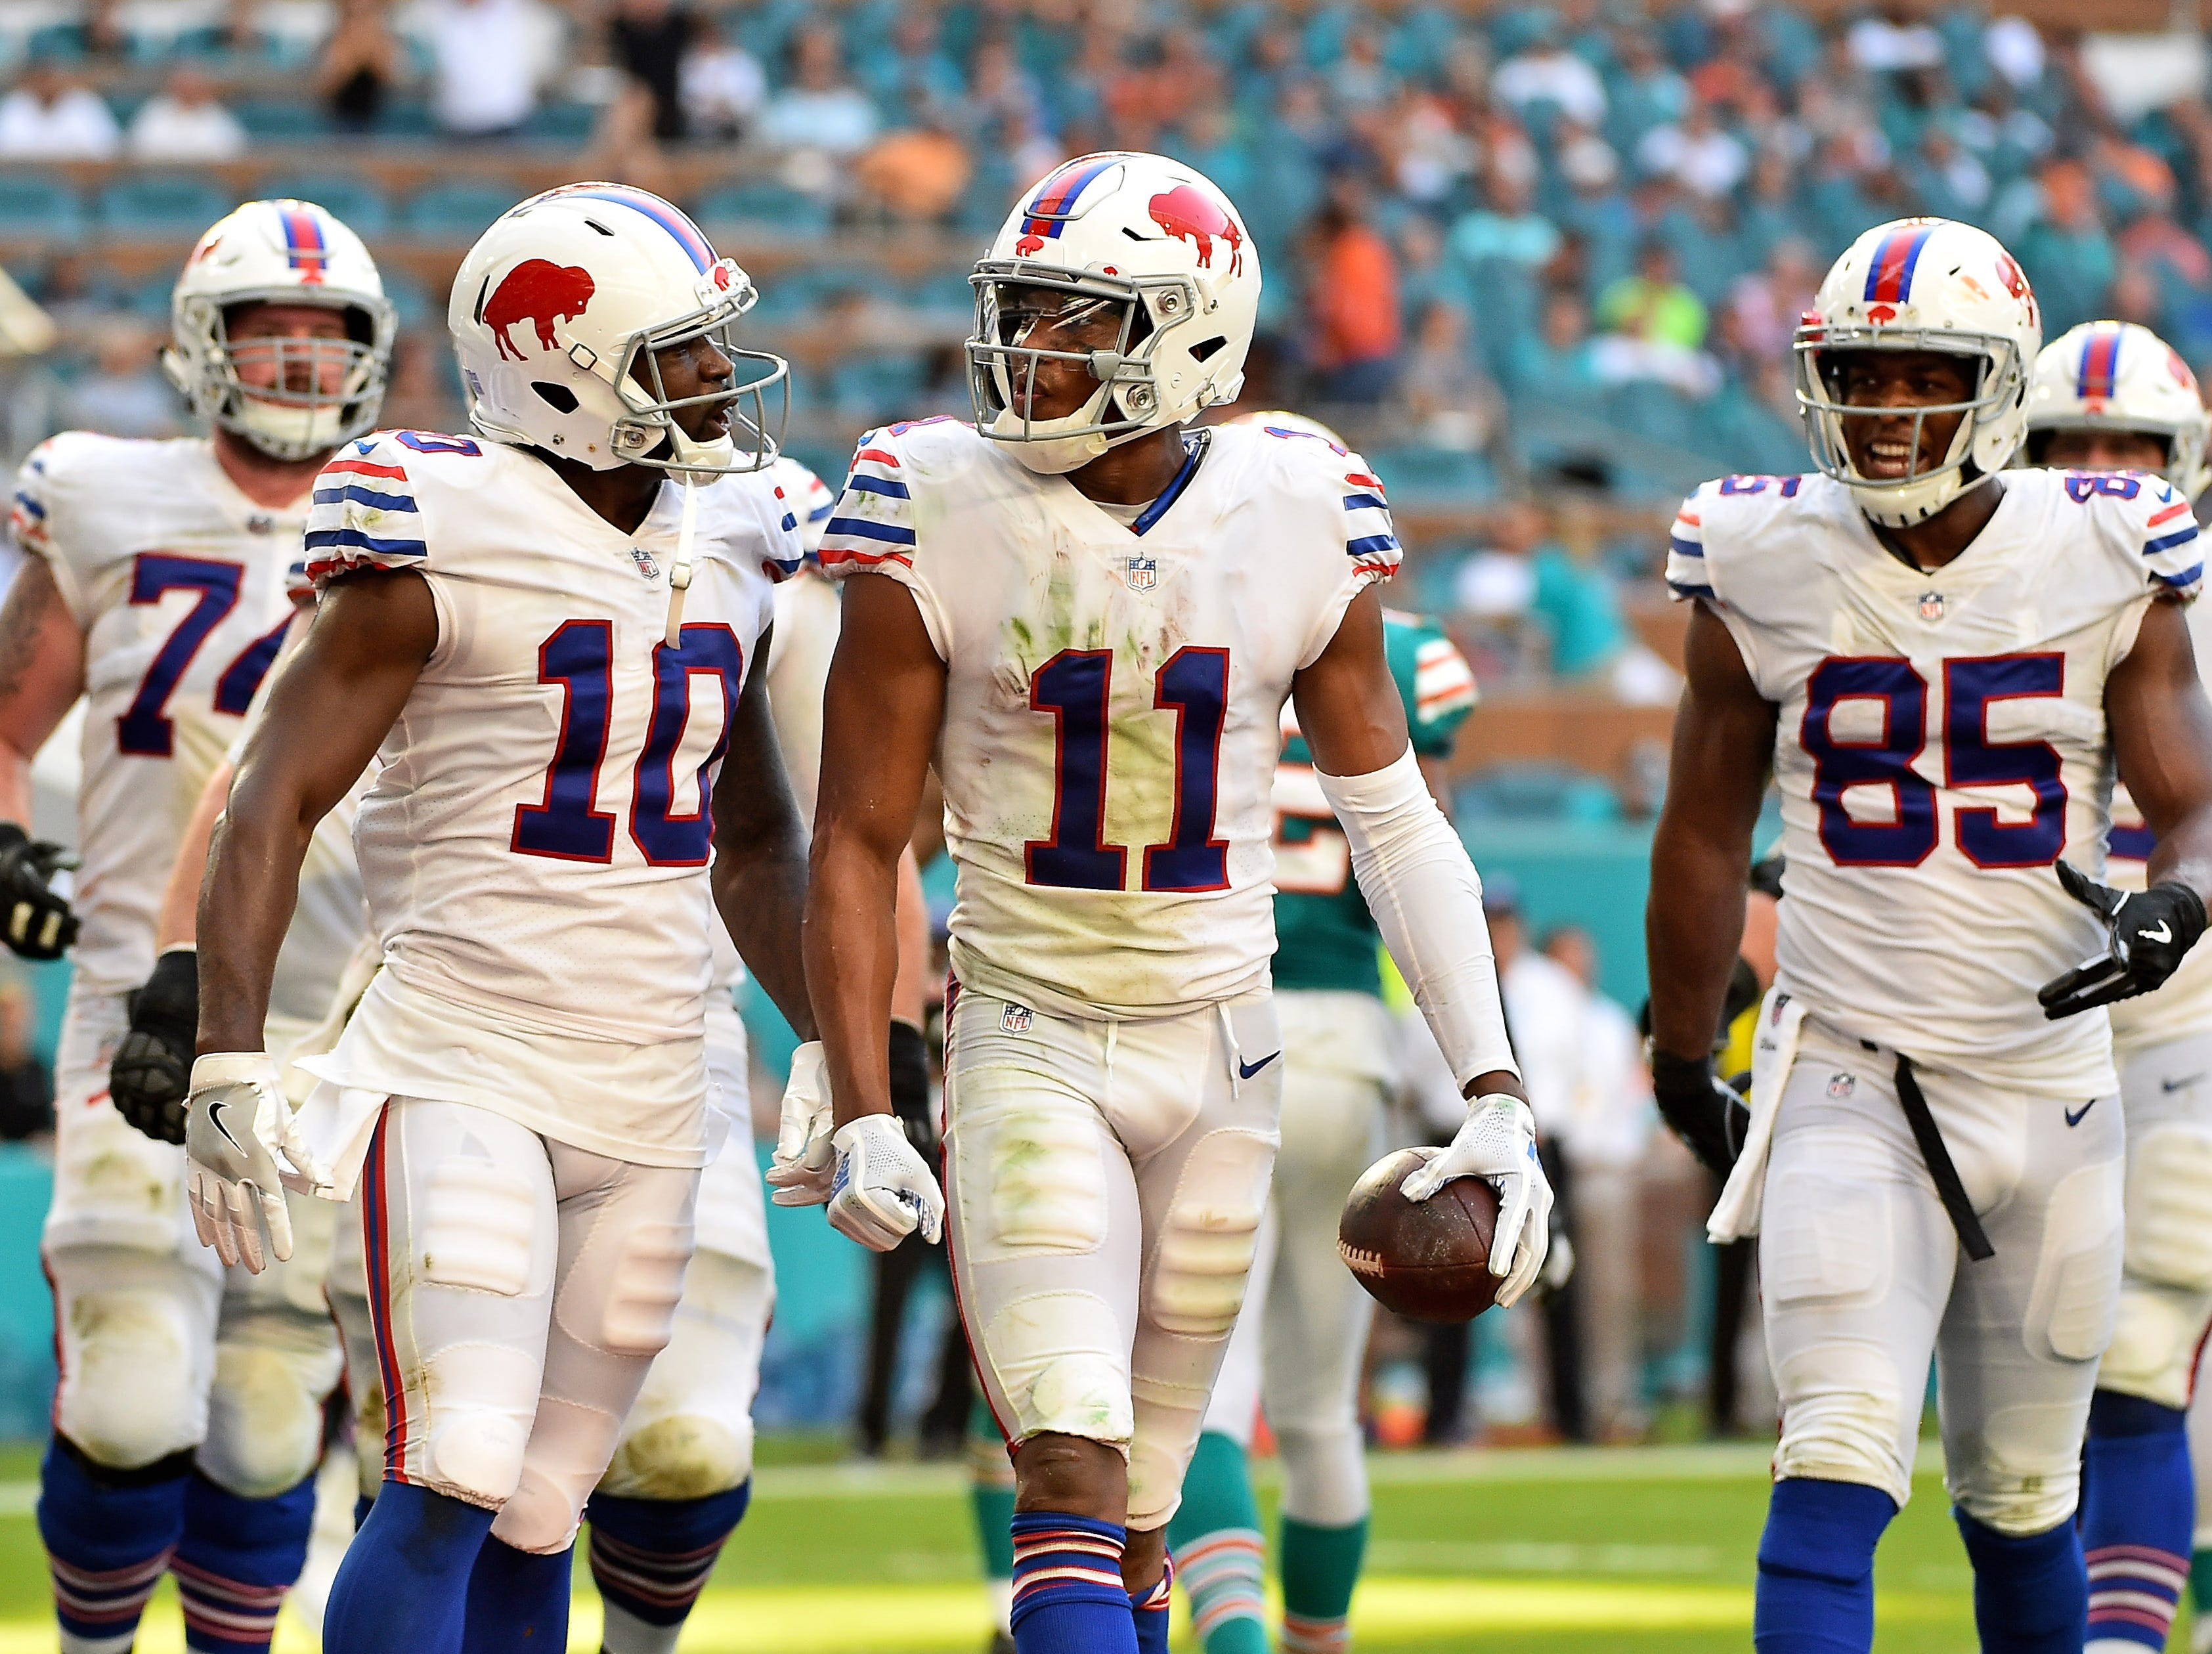 Dec 2, 2018; Miami Gardens, FL, USA; Buffalo Bills wide receiver Zay Jones (11) celebrates with teammates after scoring a two-point conversion during the second half against the Miami Dolphins at Hard Rock Stadium. Mandatory Credit: Jasen Vinlove-USA TODAY Sports